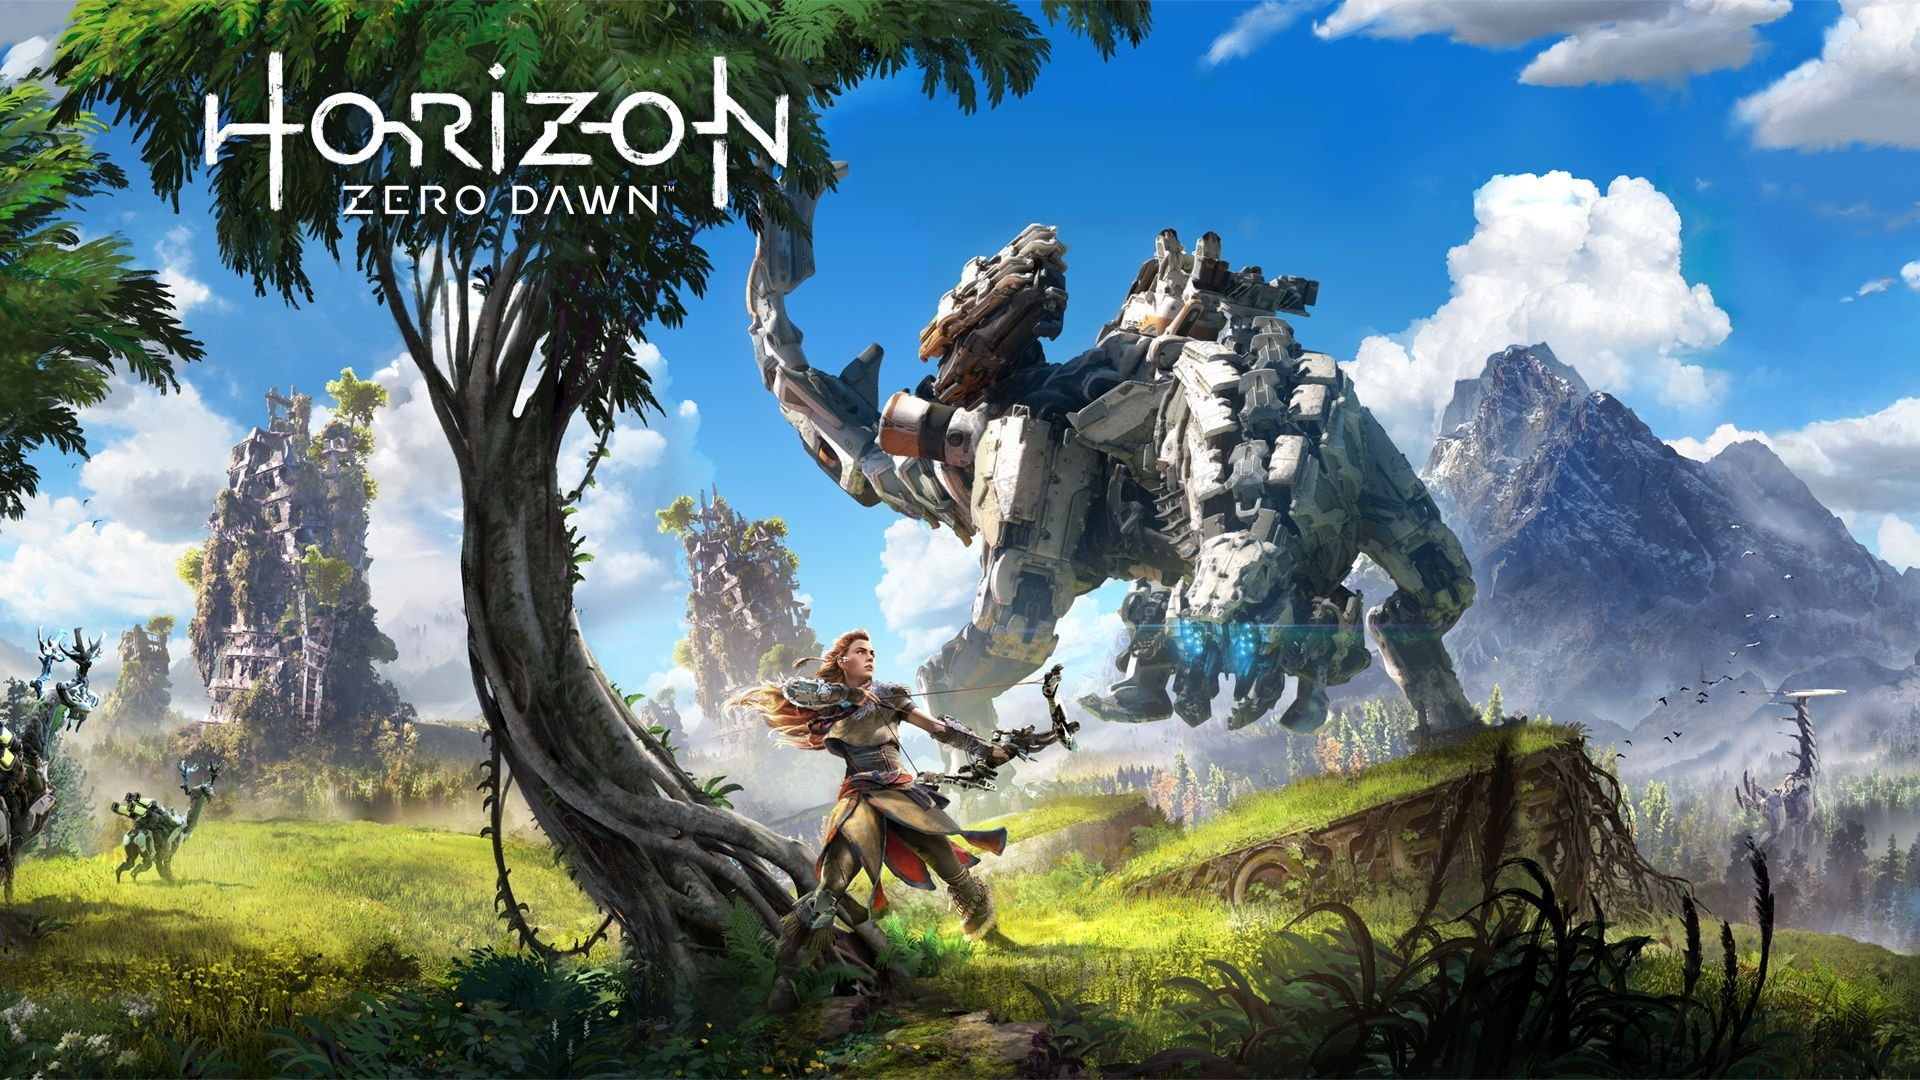 google map offline download for pc with Horizon Zero Dawn Wallpapers on Horizon Zero Dawn Wallpapers furthermore Sitecredits furthermore Big together with 29768 Grand Theft Auto V Signature Series Guide besides Download Adobe Air Version Of Free Pacman Game.